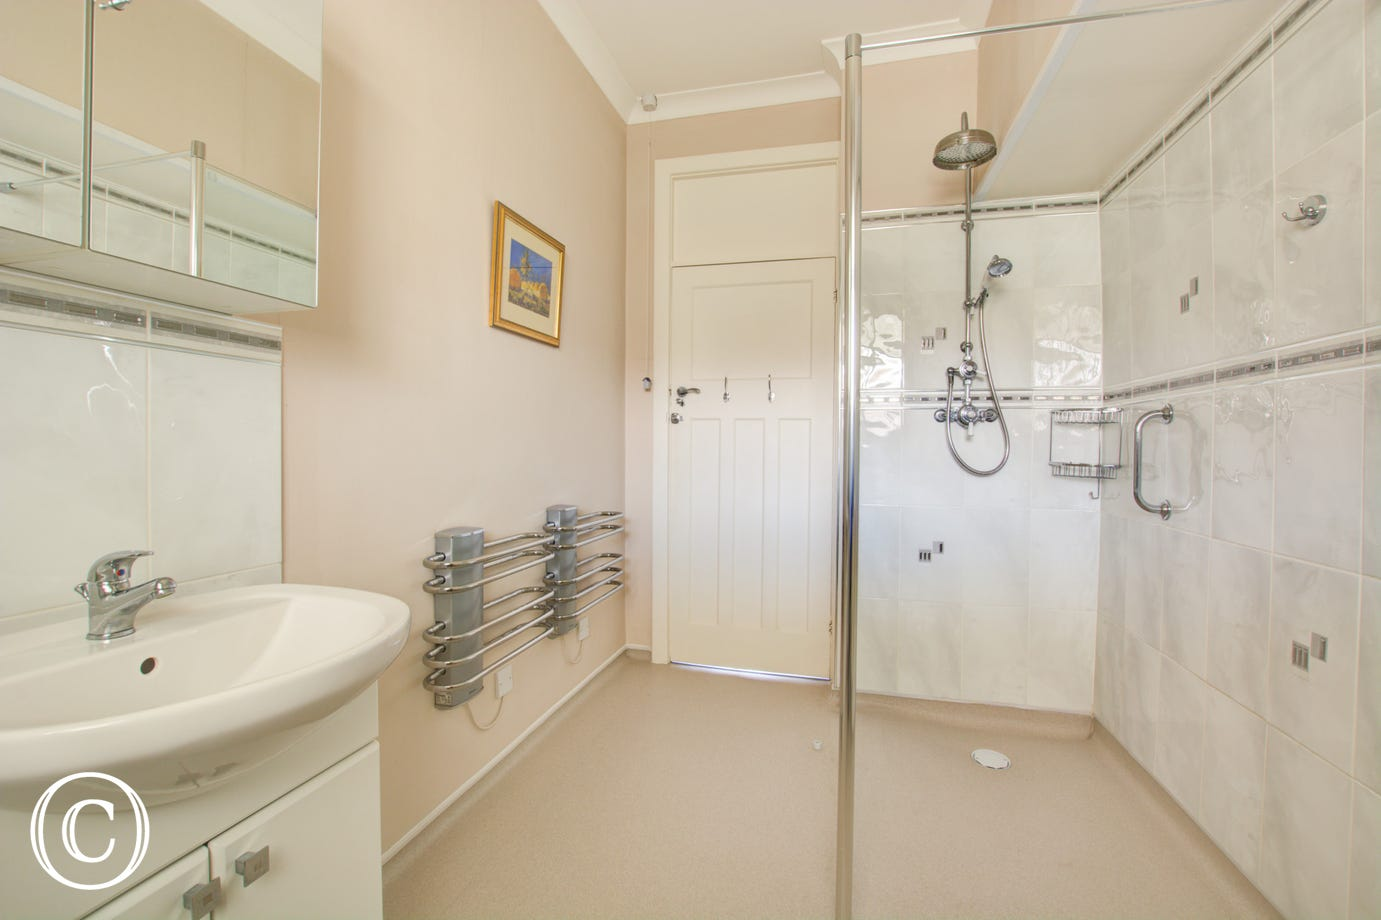 Wet Room with shower cubicle, wash basin and wc